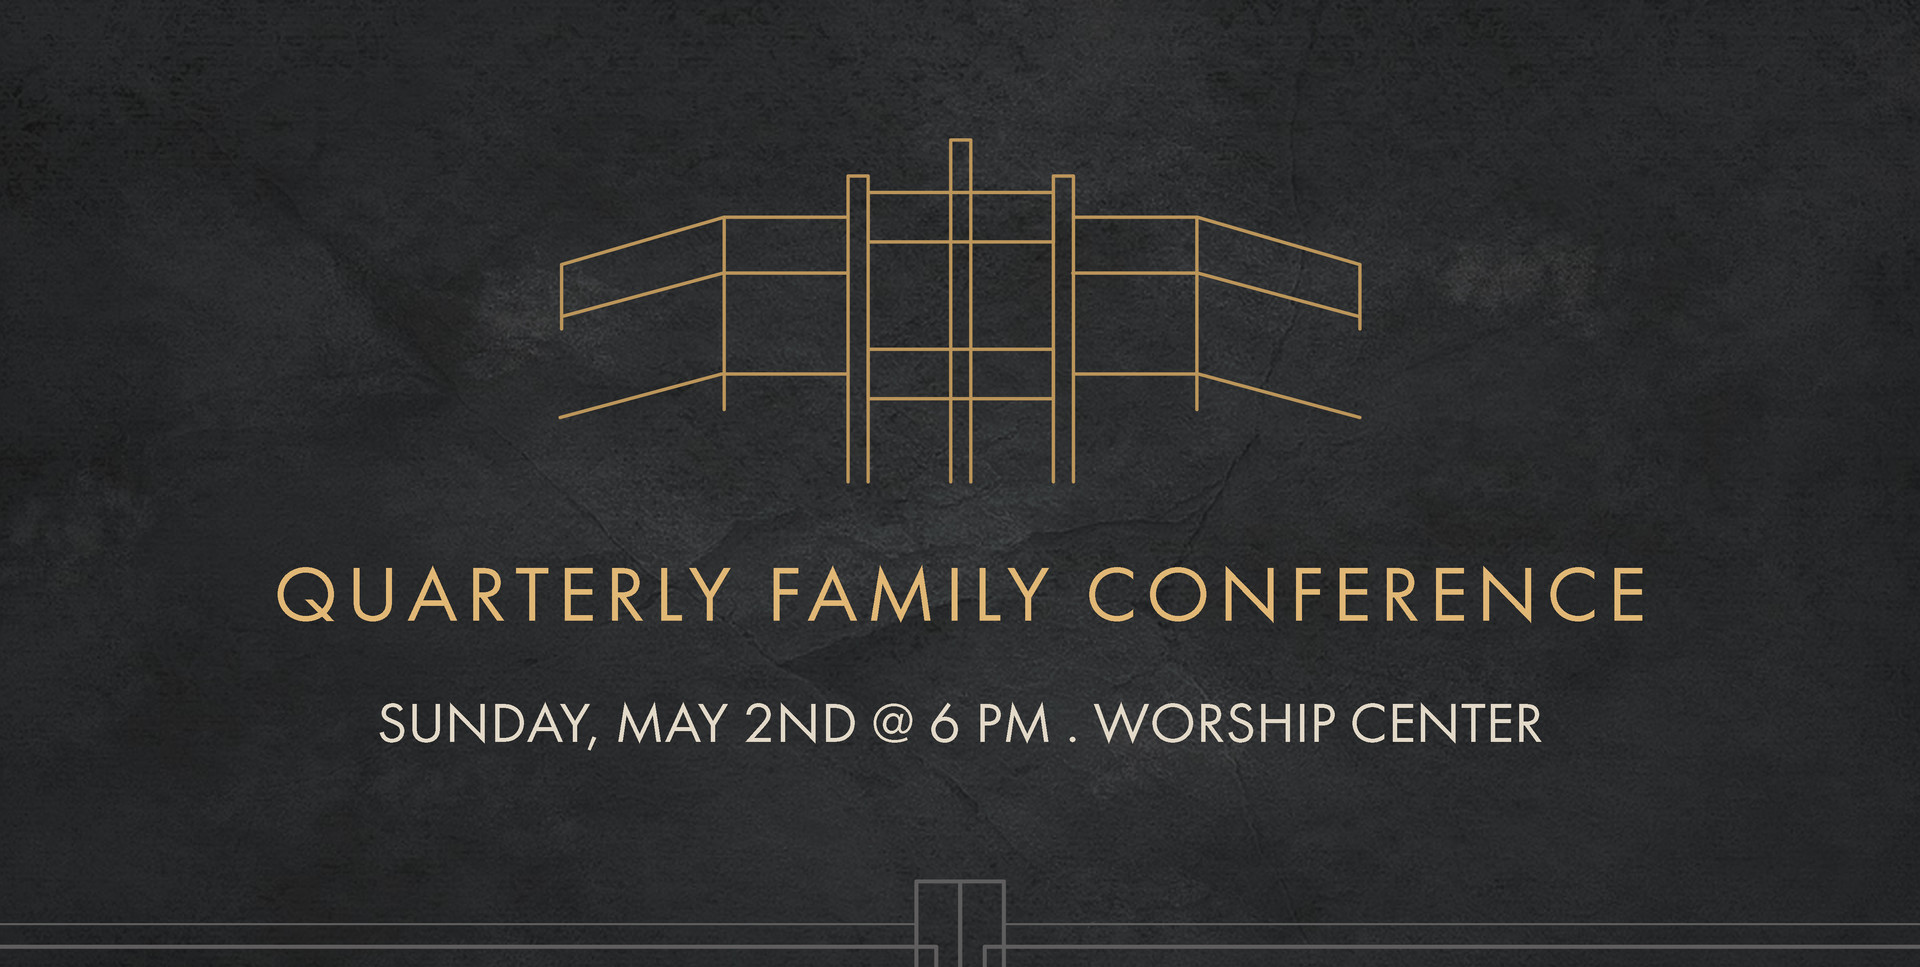 QUARTERLY FAMILY CONFERENCE